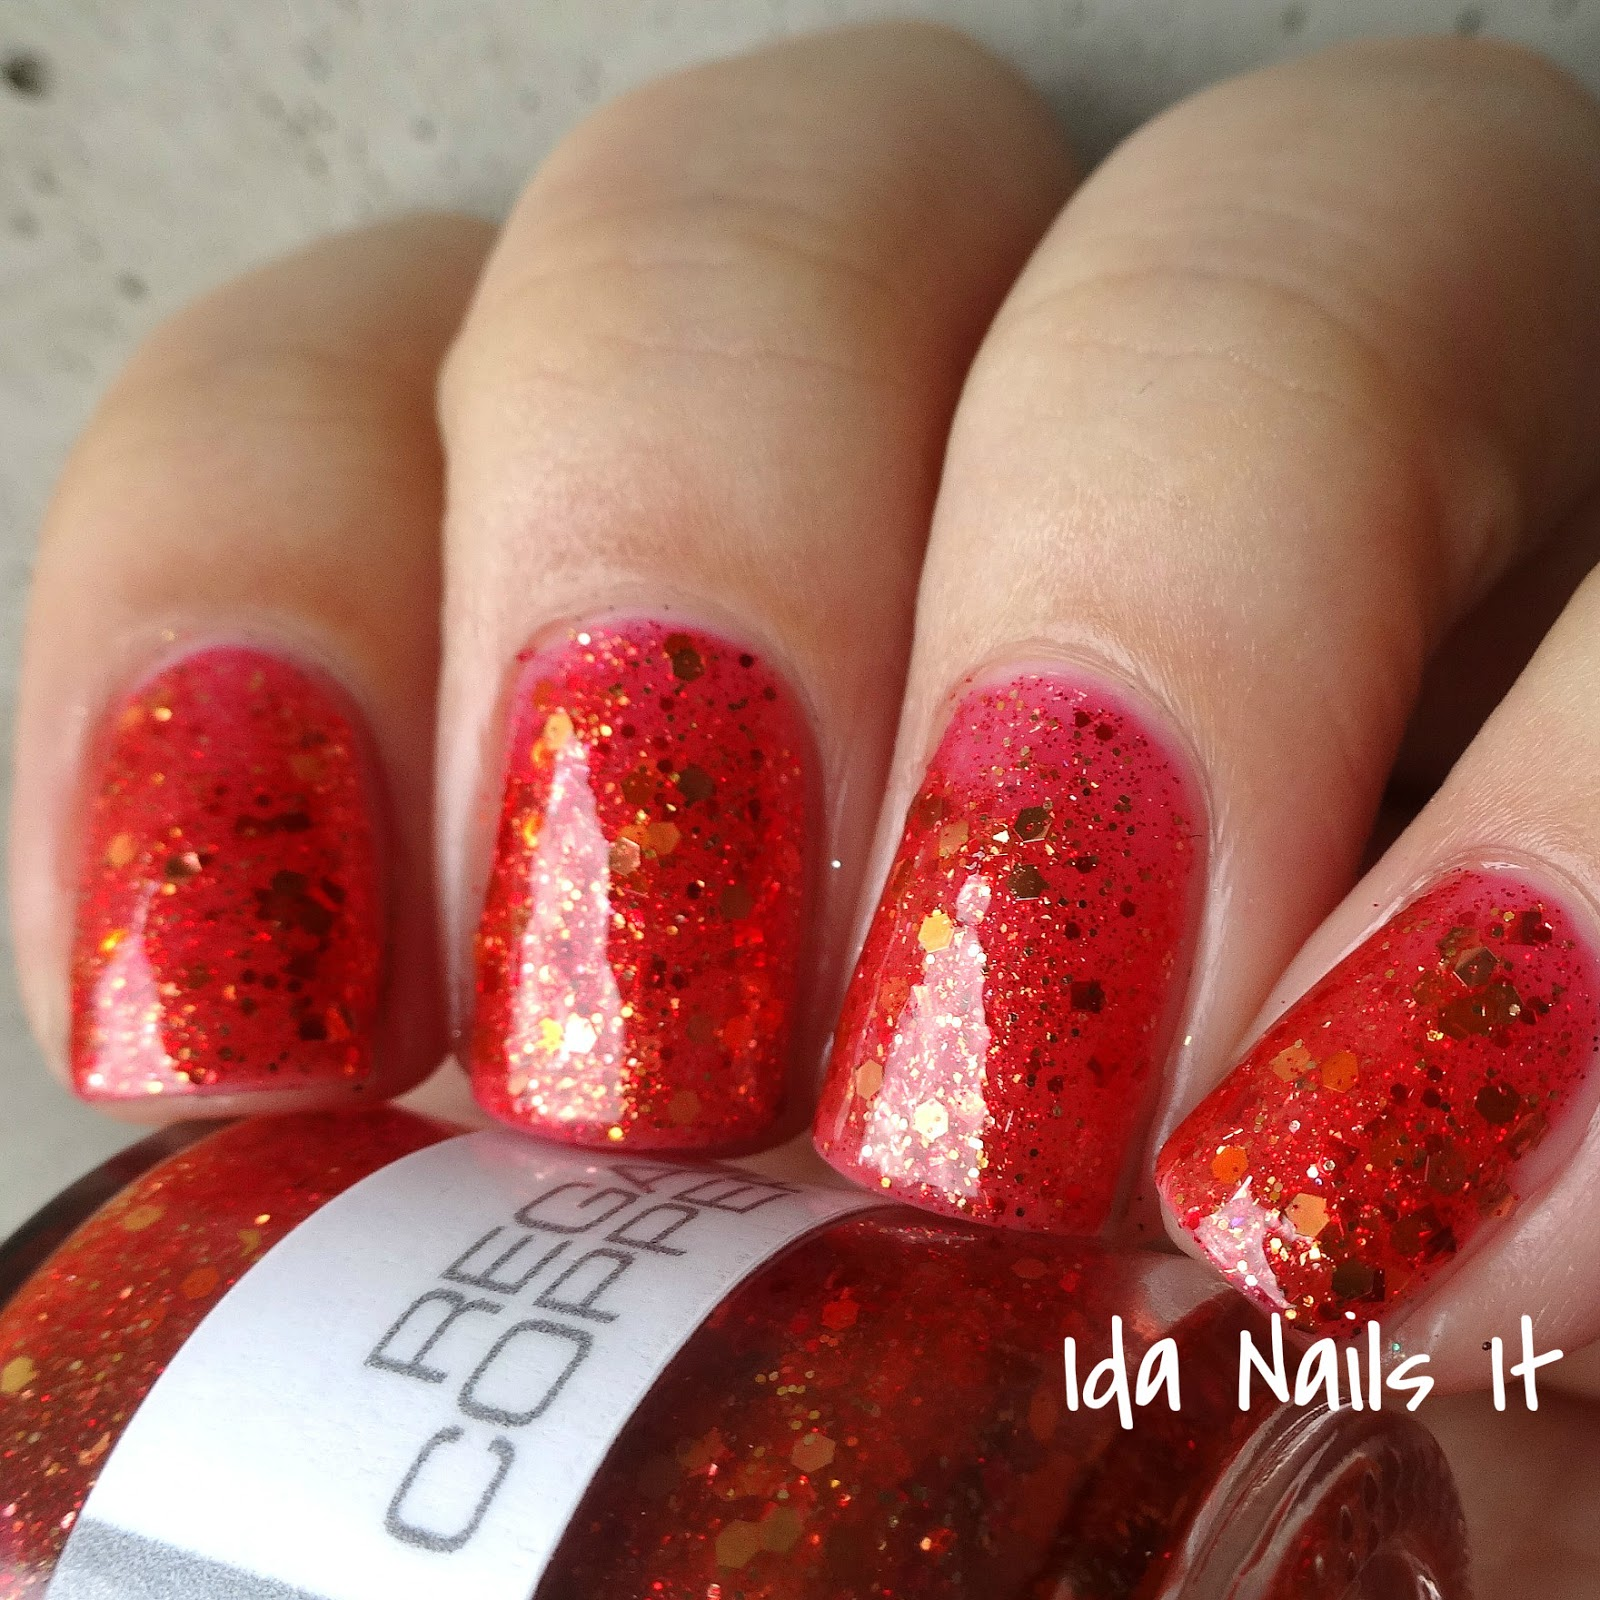 Ida Nails It: Nerd Lacquer Thursday Swatches